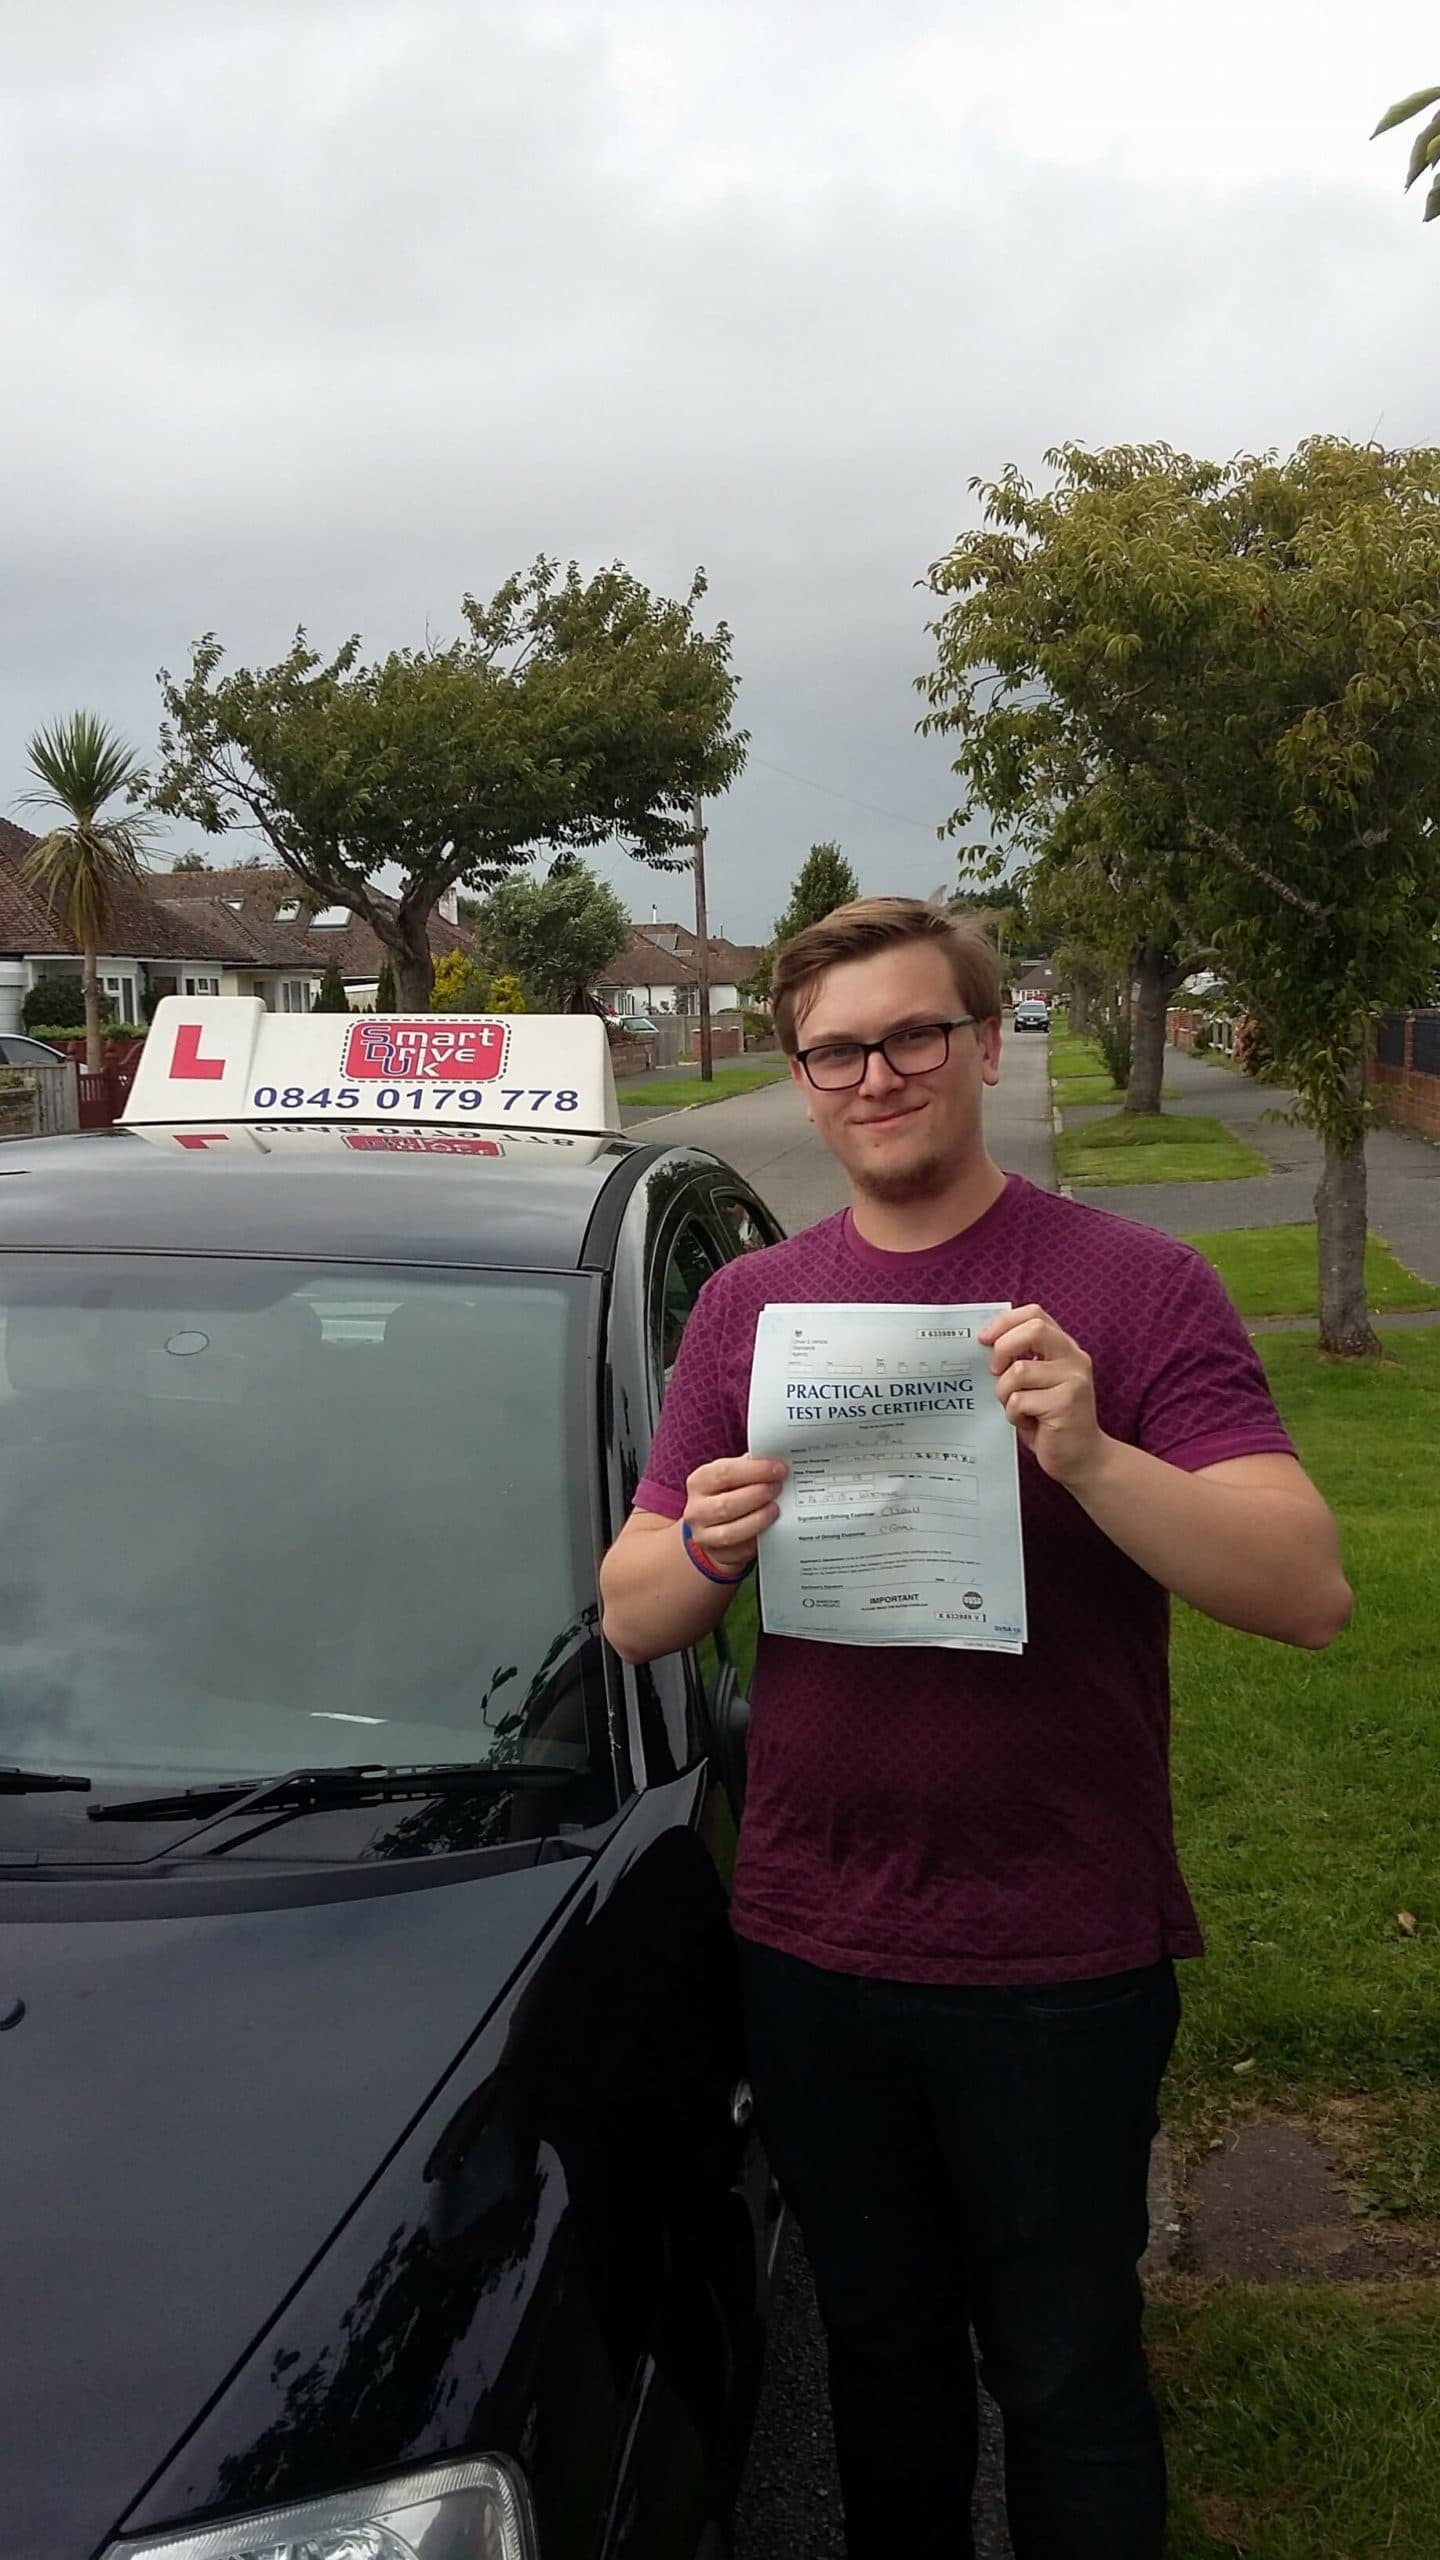 Congratulations to Brett from Worthing